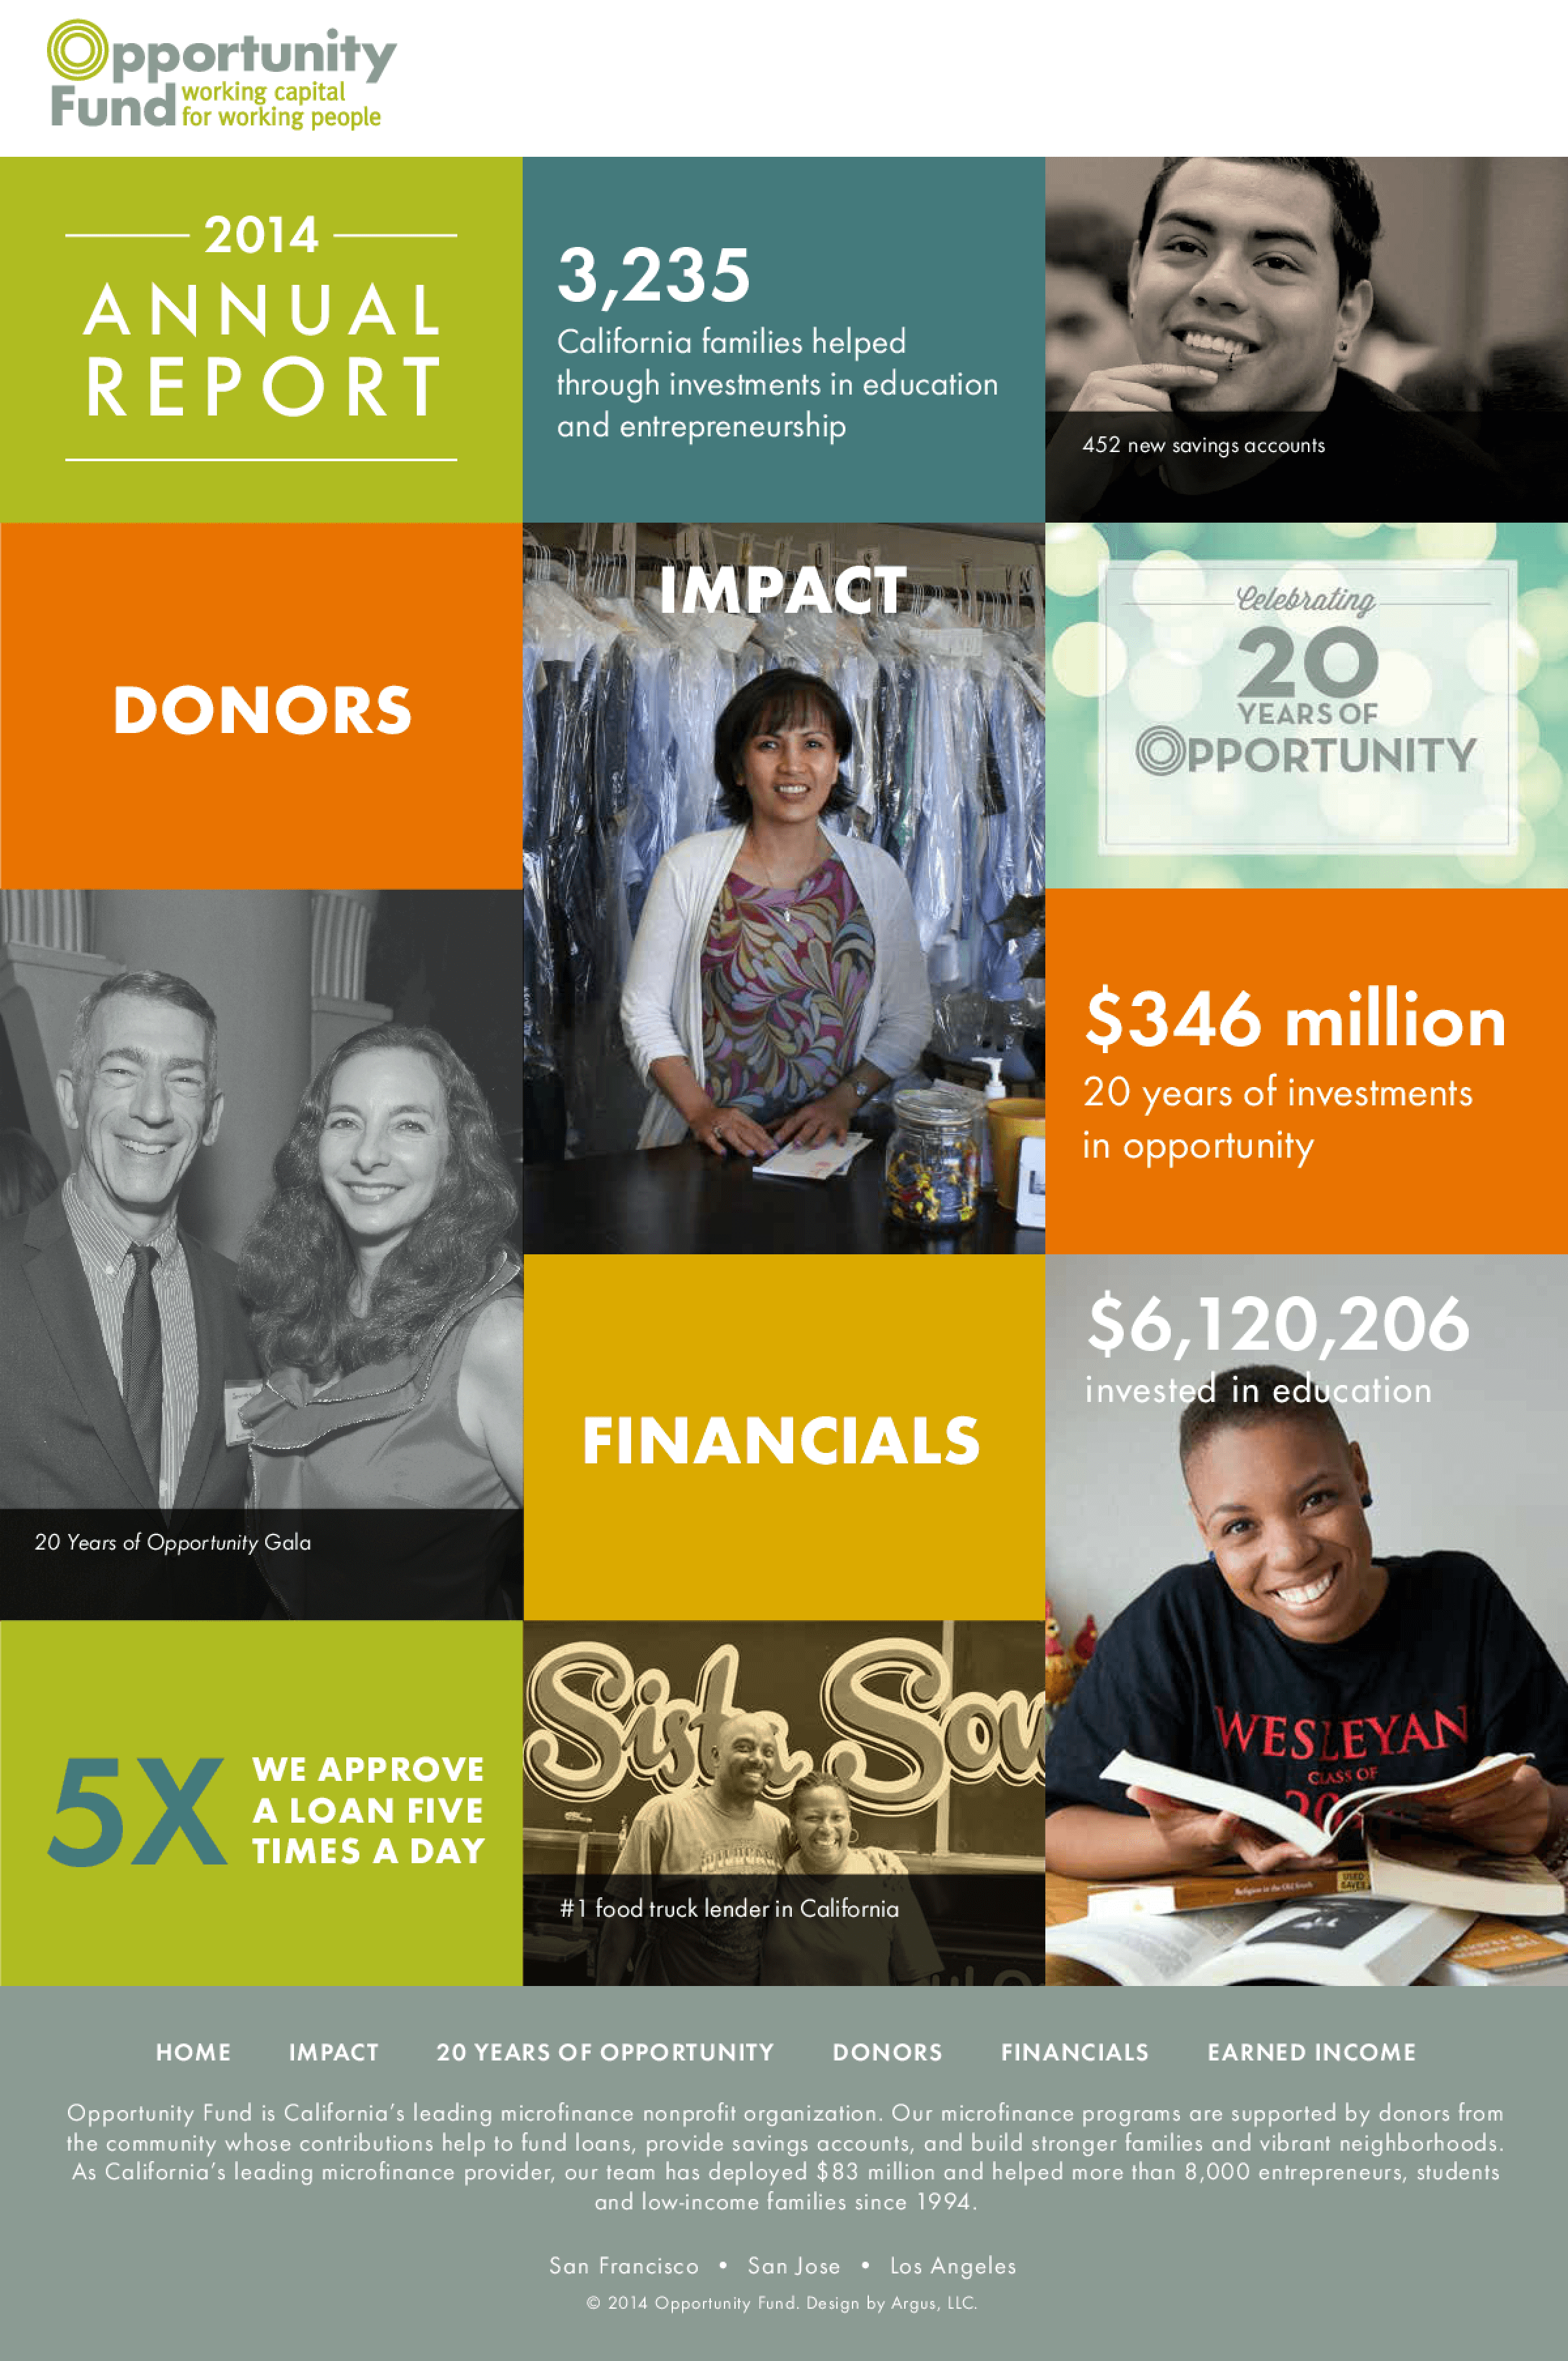 Opportunity Fund: 2014 Annual Report